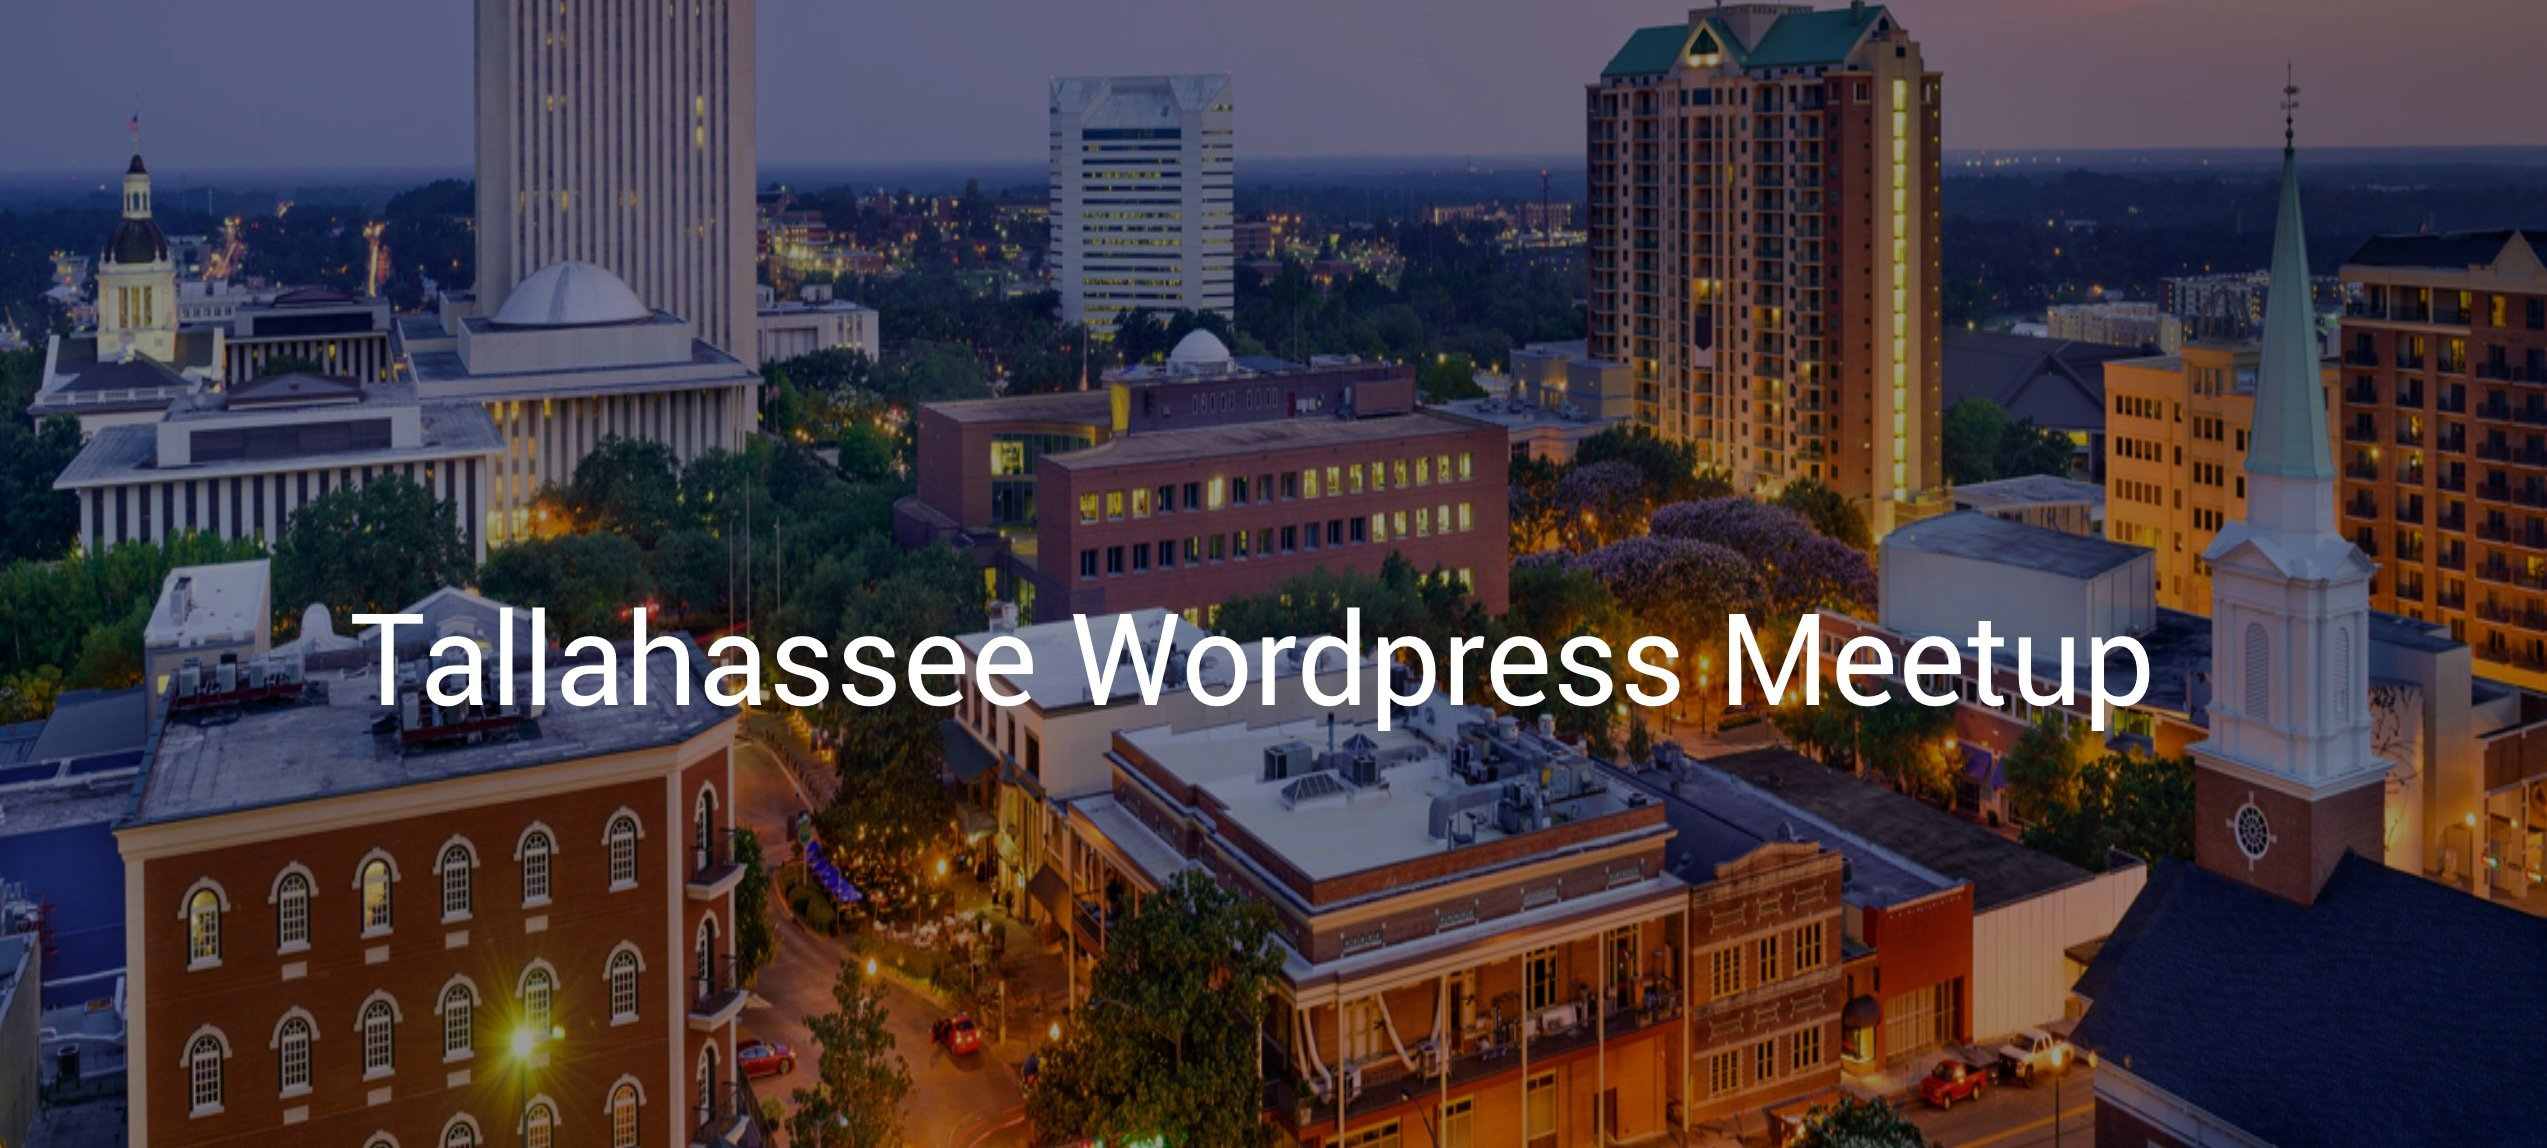 Tallahassee Wordpress Meetup